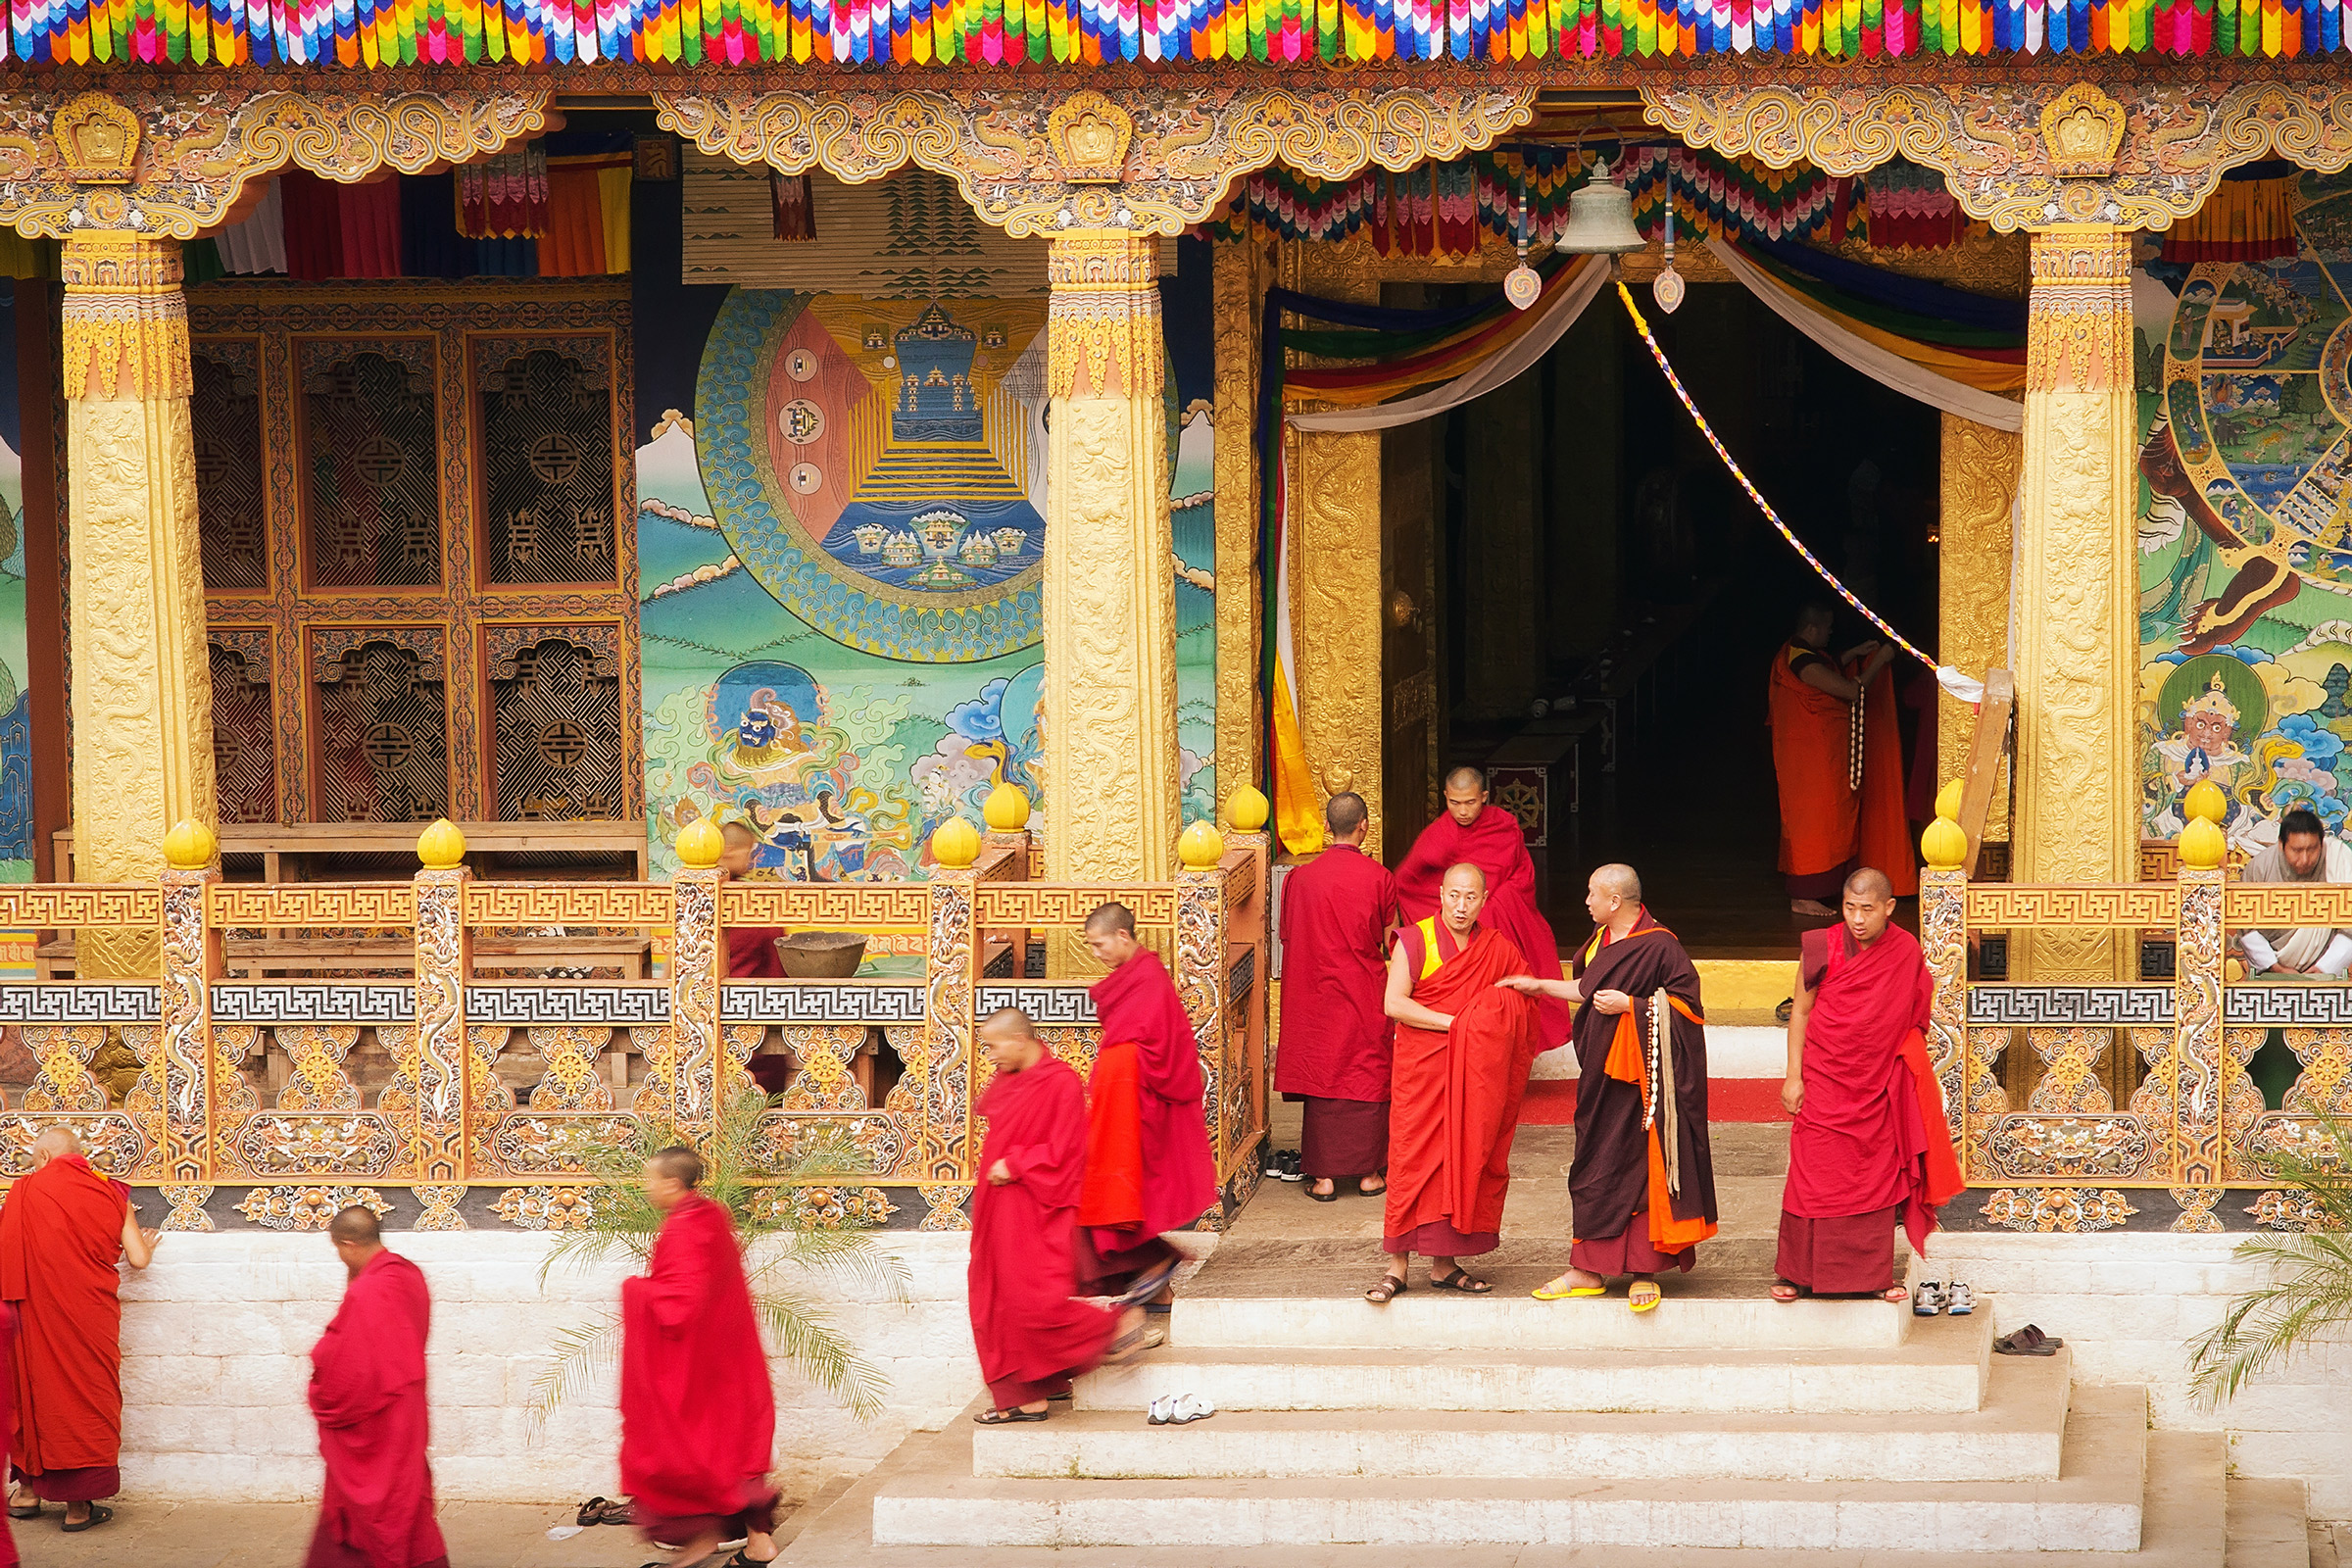 Himalayas of Tibet - Tibetan monks leave an old buddhist monastery temple after prayer, Lhasa, Tibet